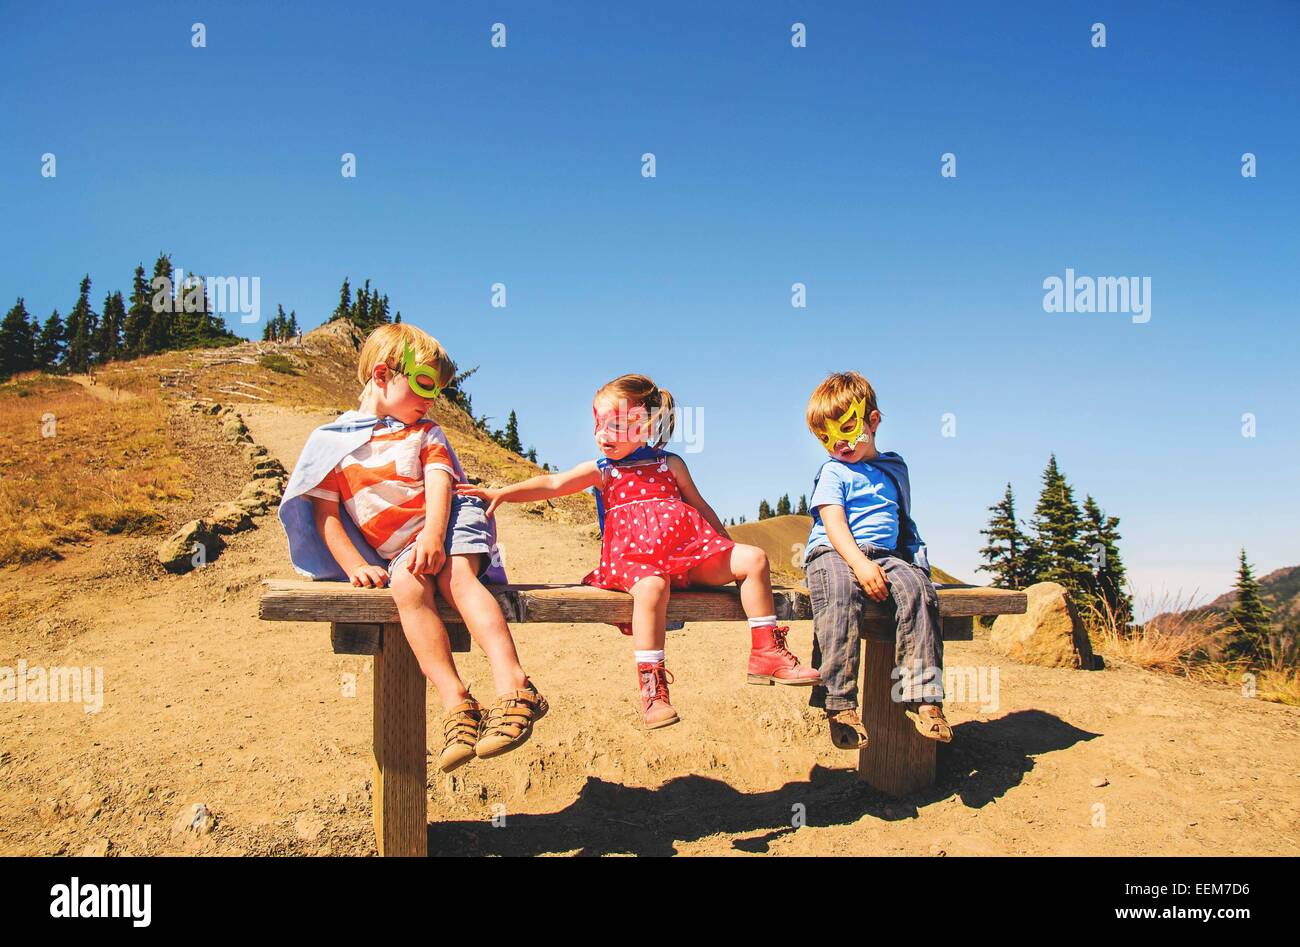 Three children (2-3, 4-5) sitting on bench wearing super hero costumes - Stock Image